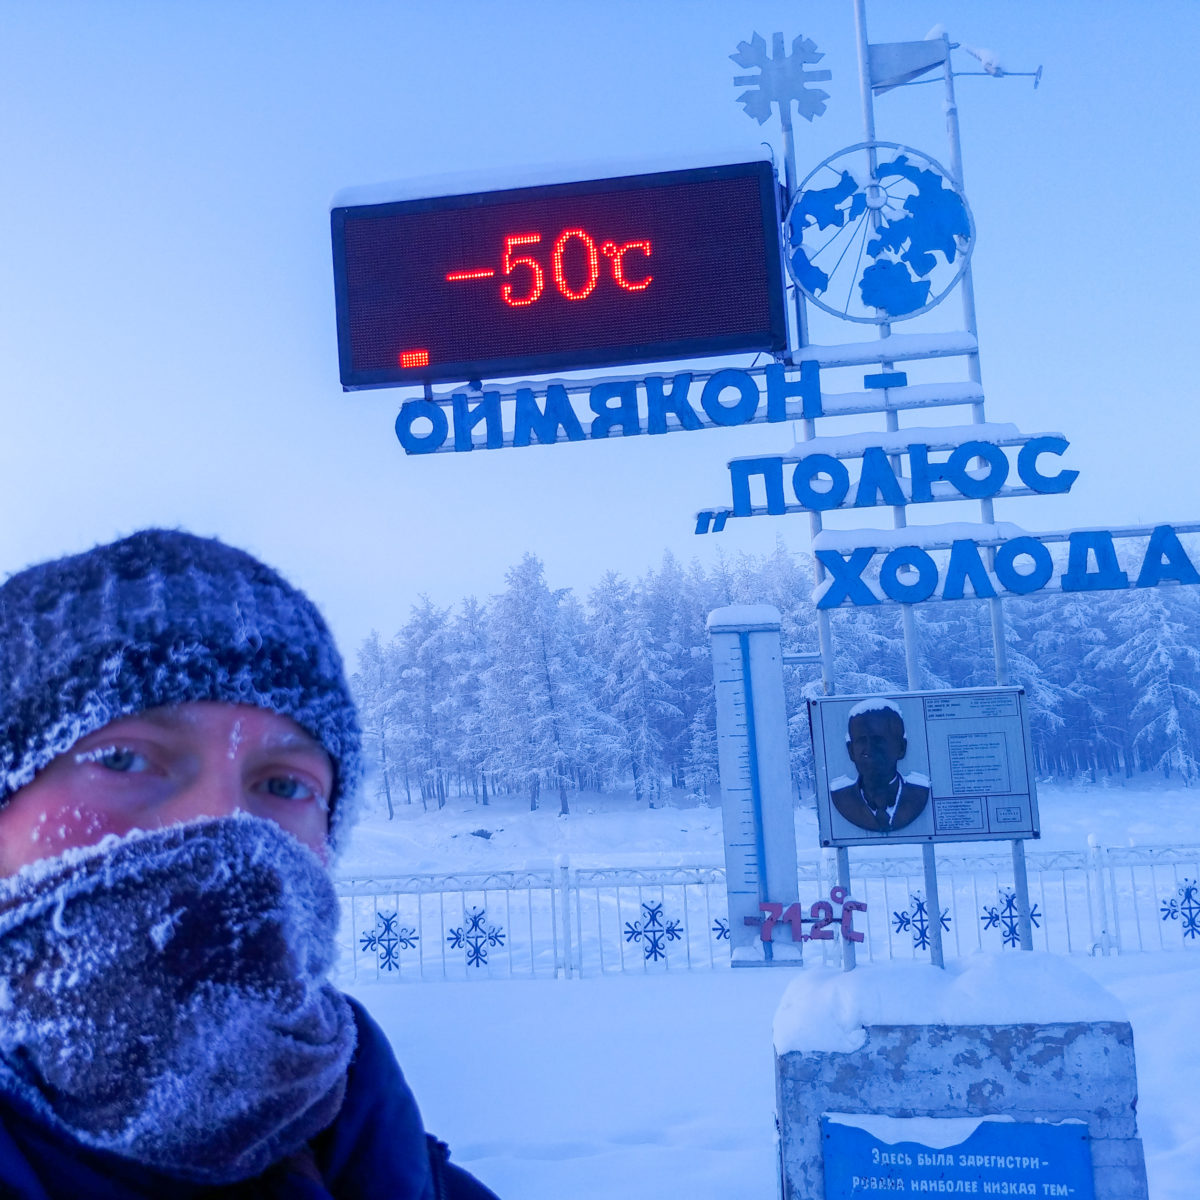 Oymyakon – Hitchhiking to the coldest place on Earth